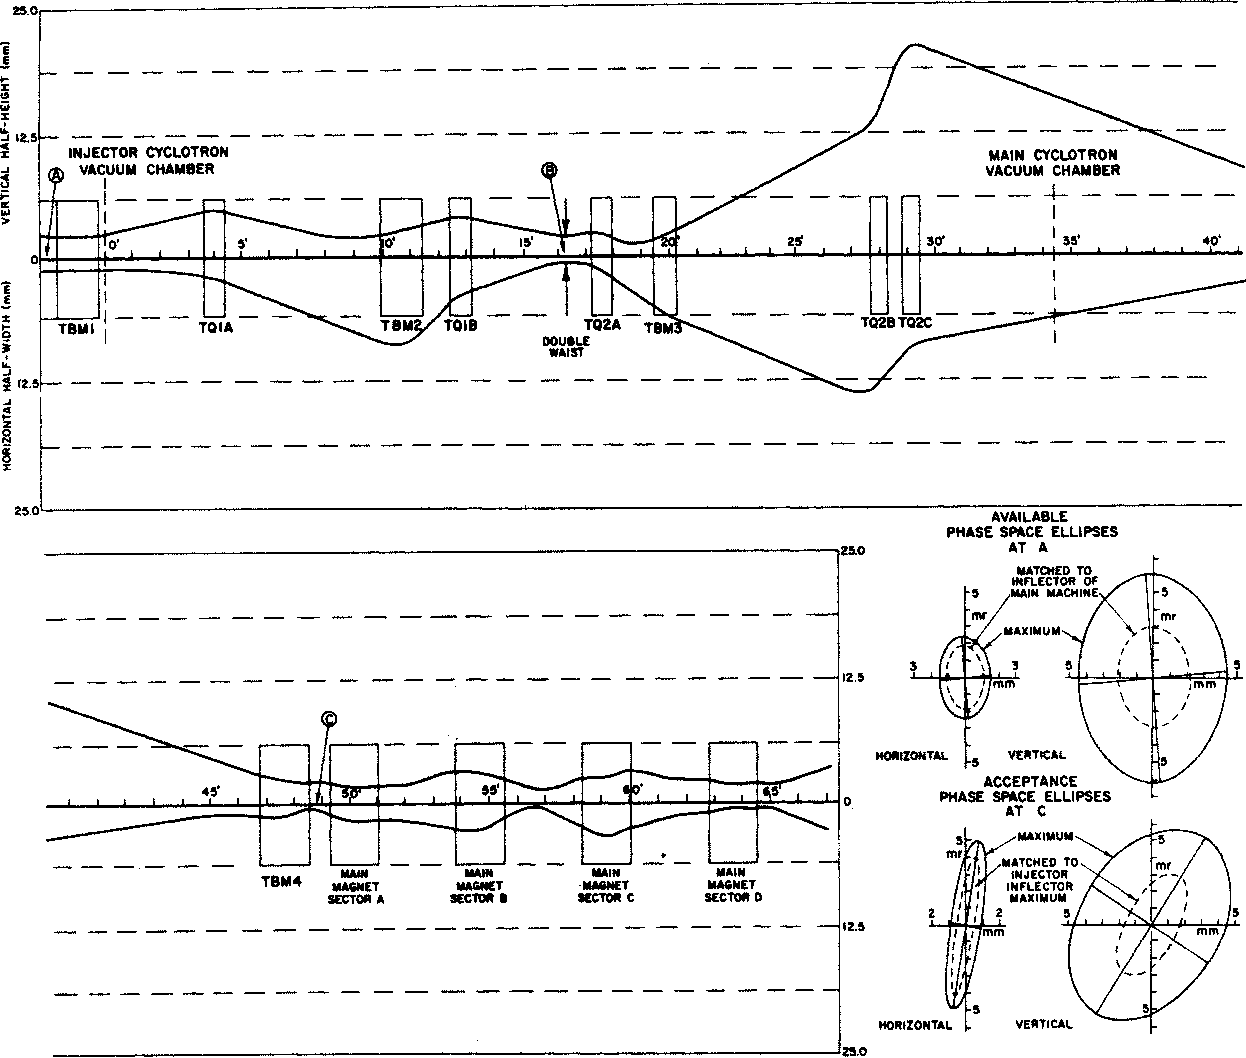 Figure 2. Results of a TRANSPORT Calculation for 16 MeV Protons Showing the Beam Envelopes in Both Planes and the Match Obtained at